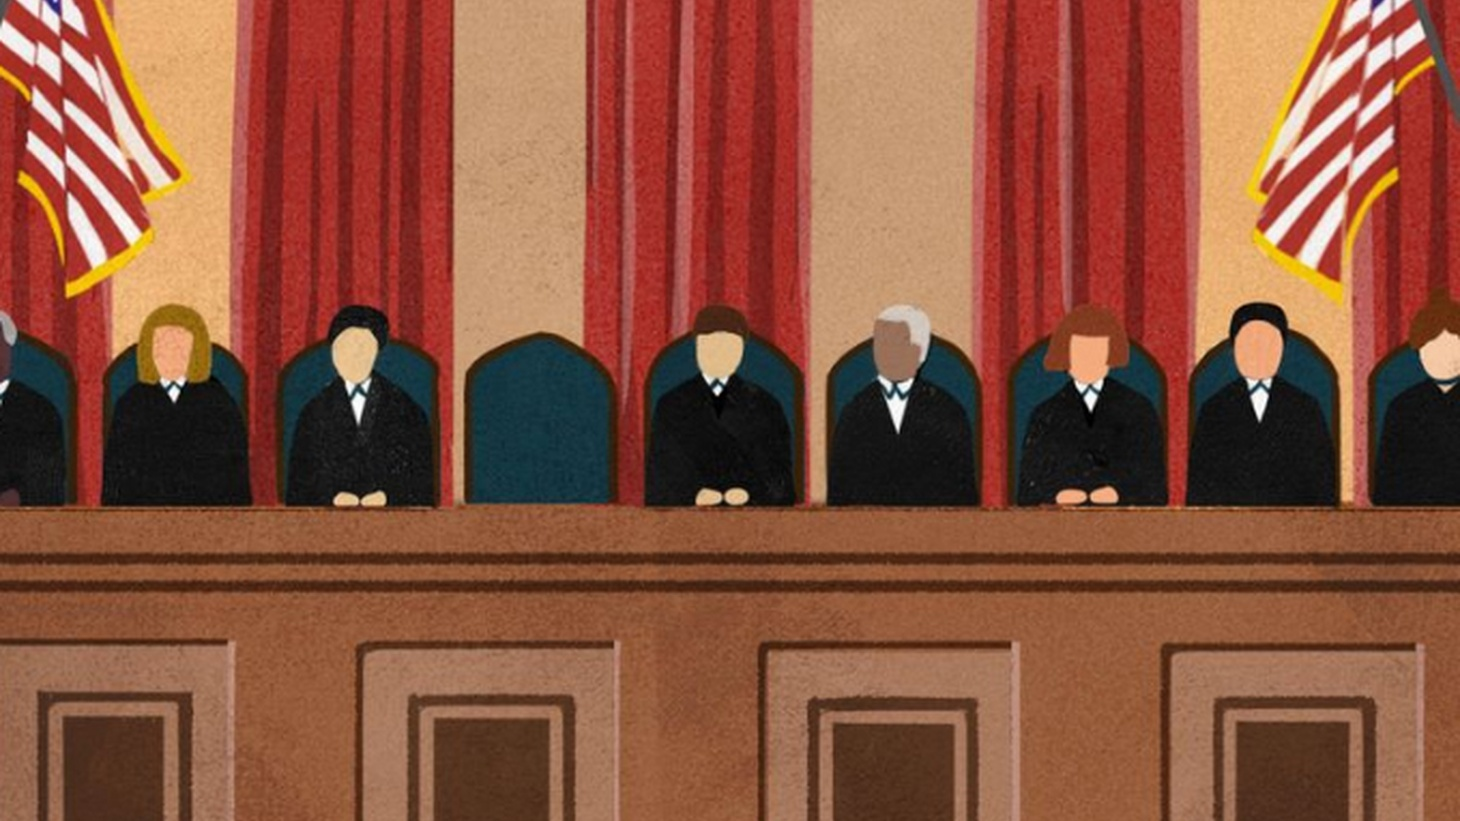 Comedian Samantha Bee talks about how late-night shows deal with tragedies like the Orlando shooting. And Jeffrey Toobin imagines how a ninth Supreme Court justice might move the court's position on controversial issues.